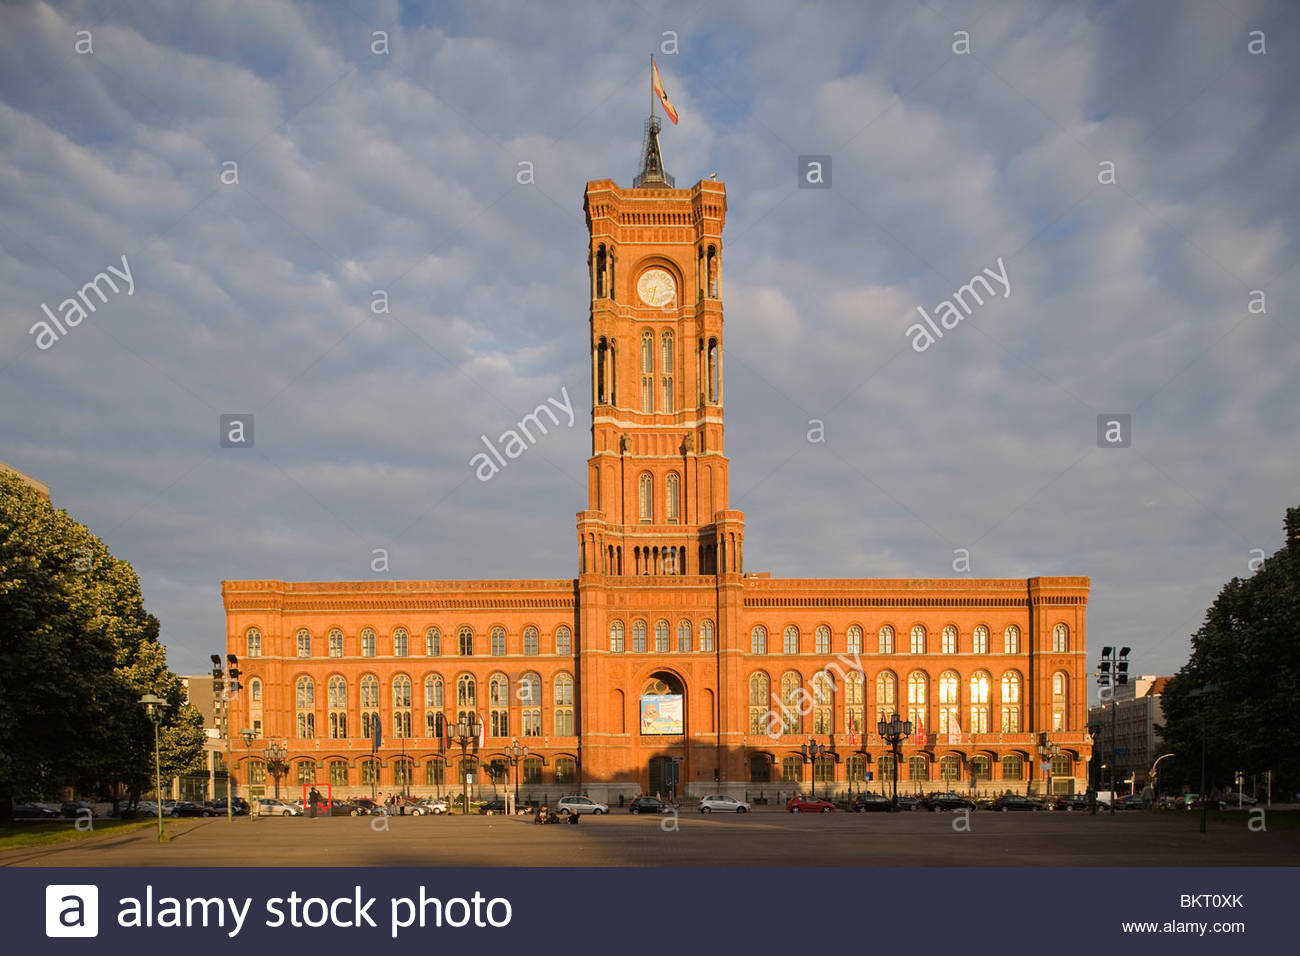 Red townhall,Rotes Rathaus,Alexanderplatz,Berlin,Germany - Stock Image